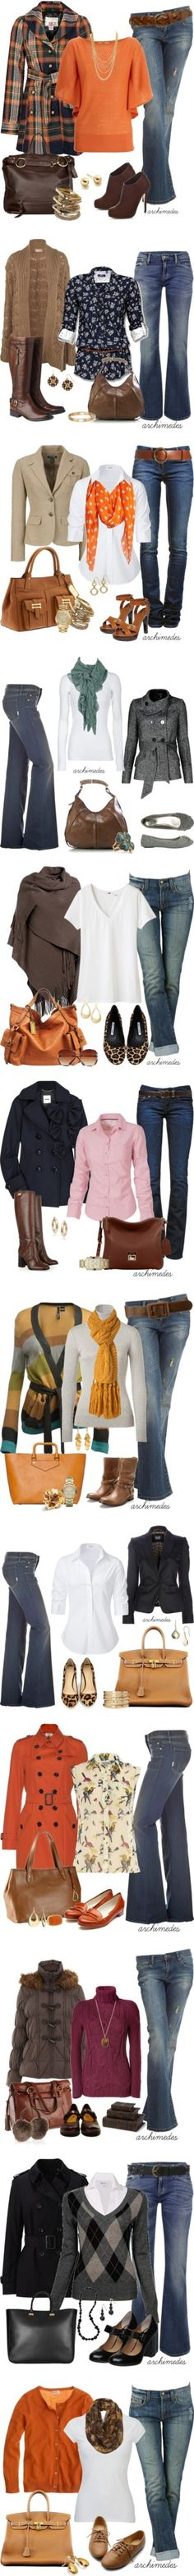 Great ideas for Fall outfits - love all of these